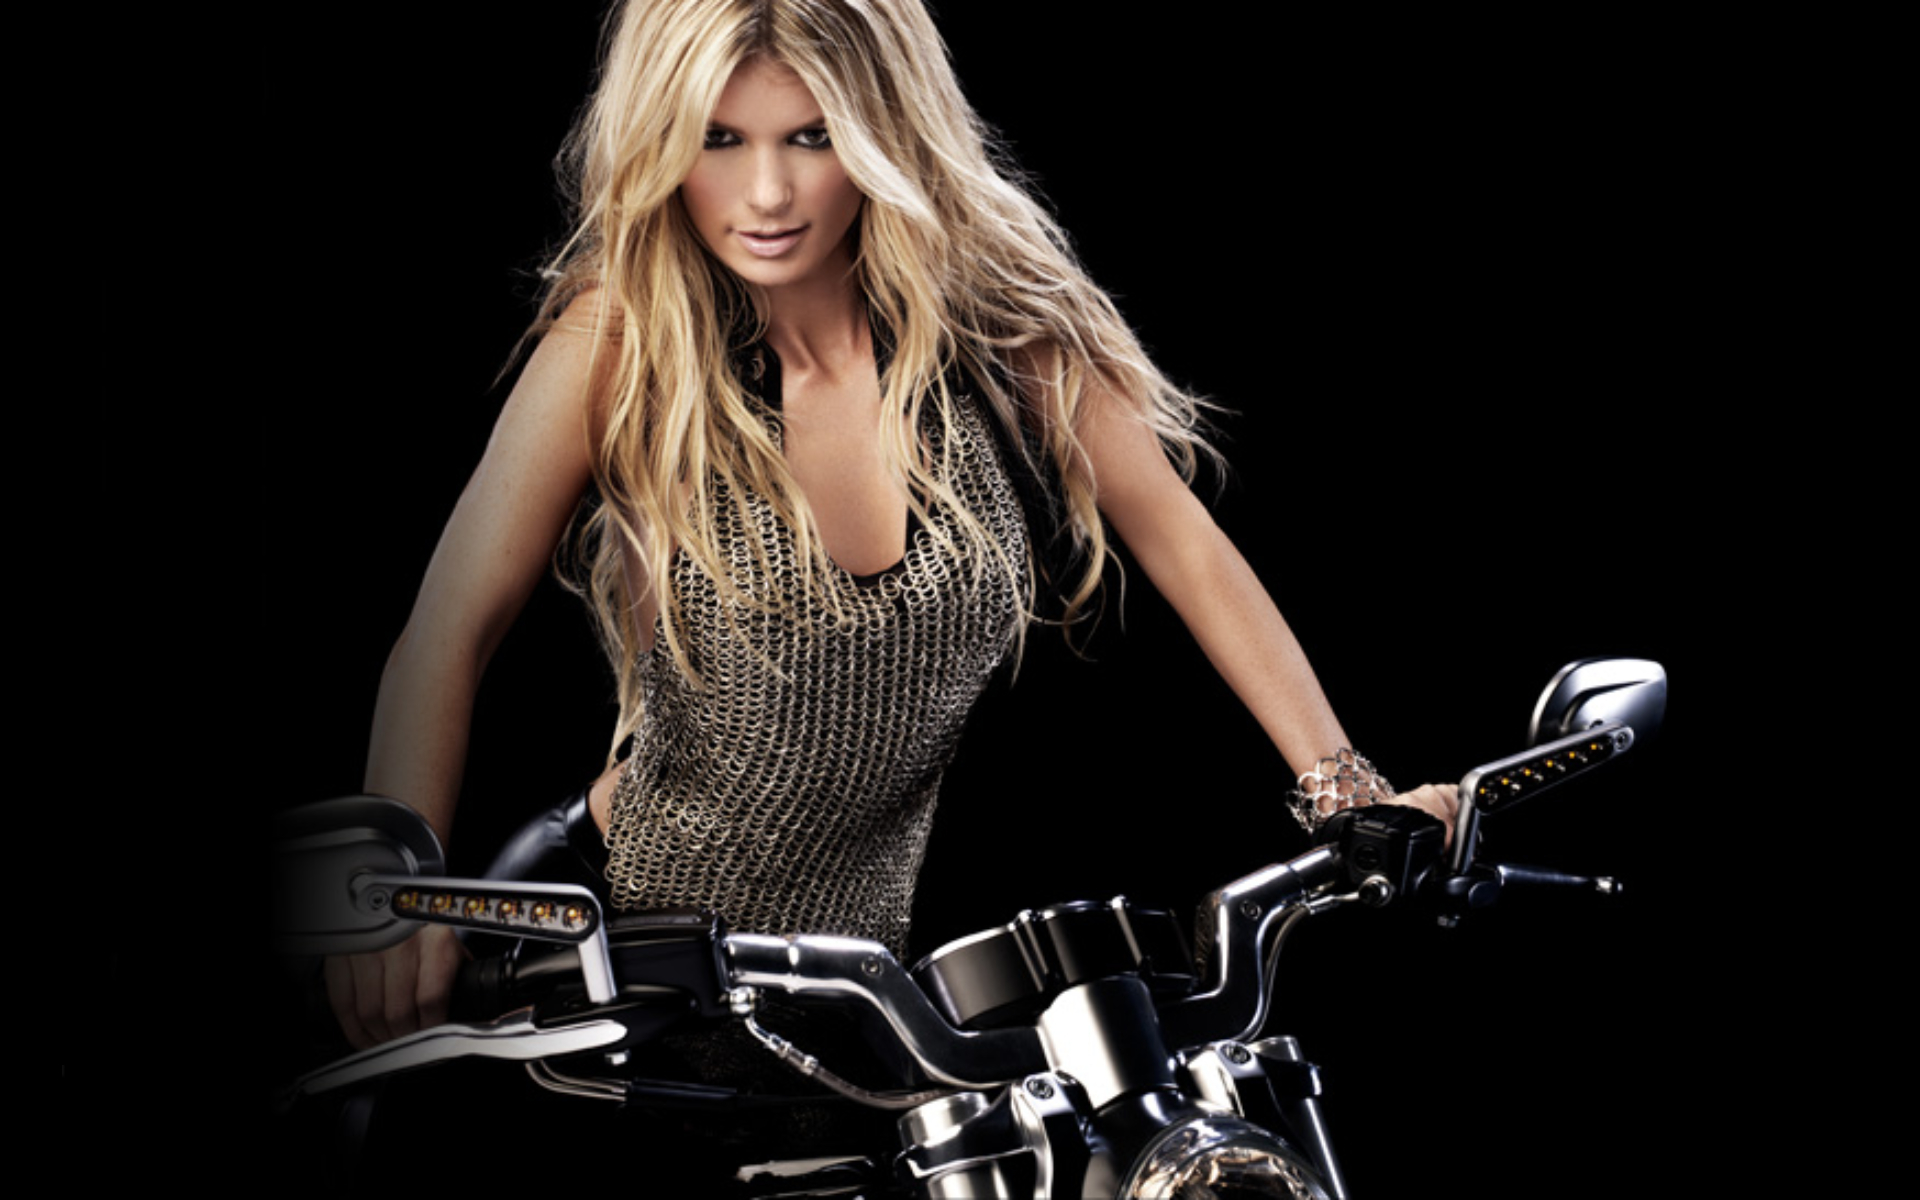 Biker Wallpaper Of Marisa Miller - Biker Wallpaper Of Marisa Miller